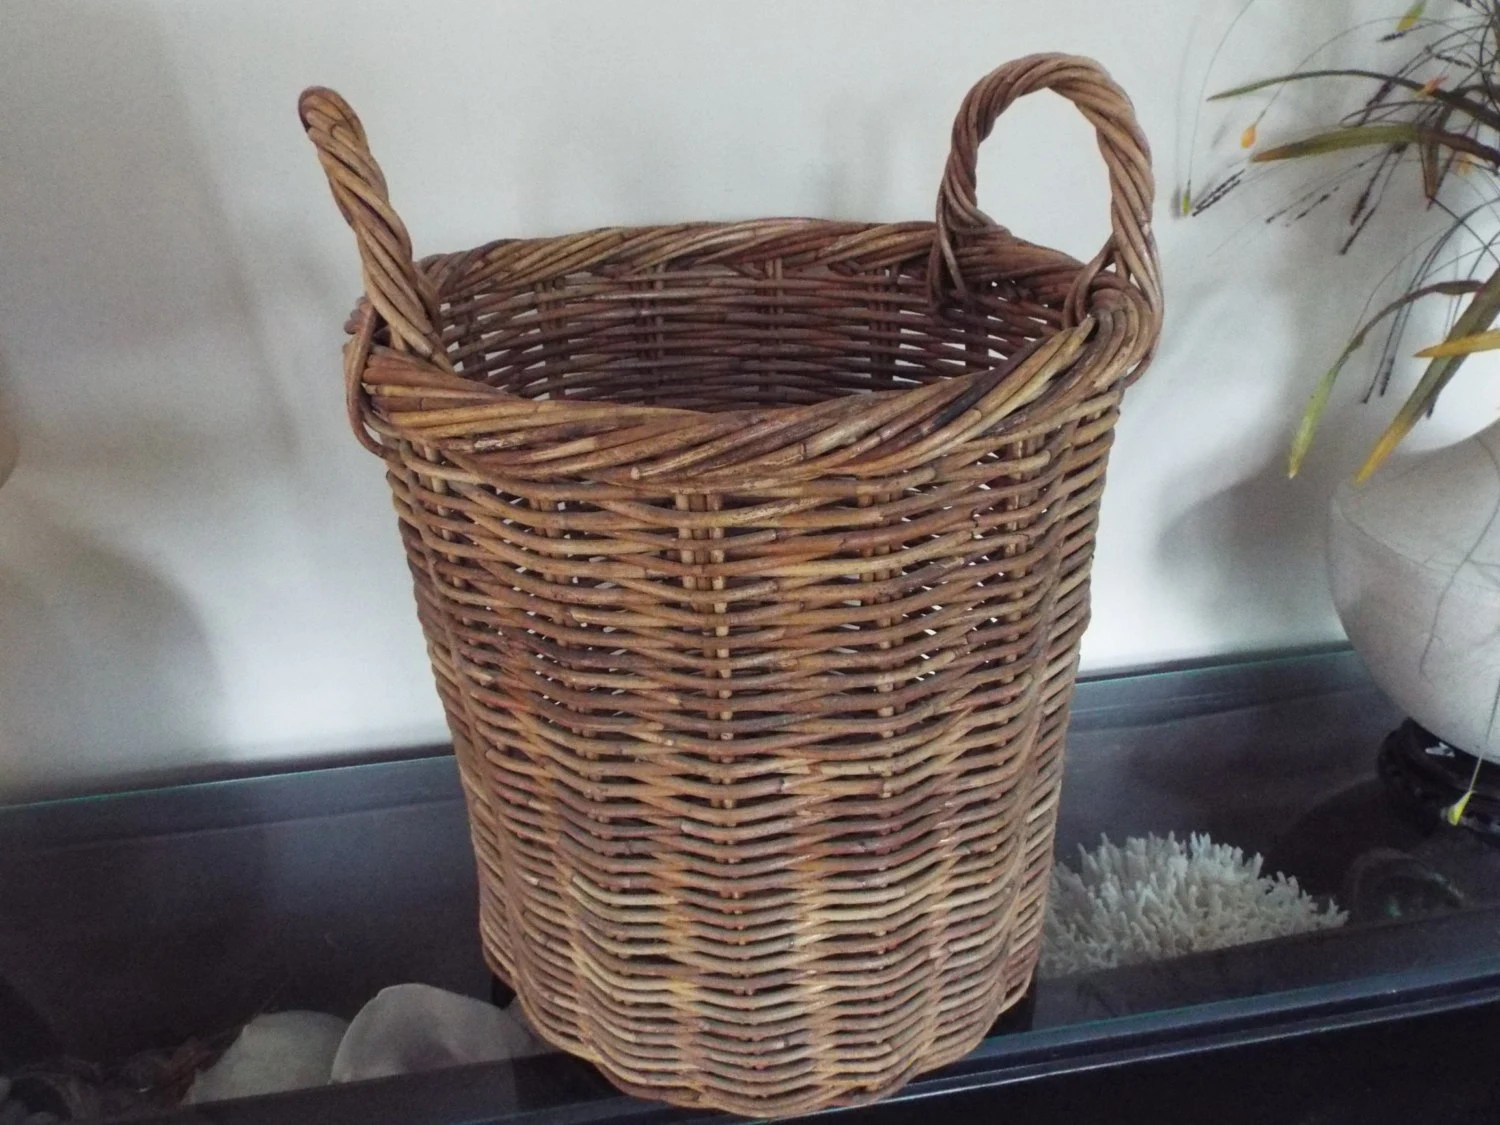 Large Round Wicker Baskets With Handle : Large tall round woven wicker baquette basket handles